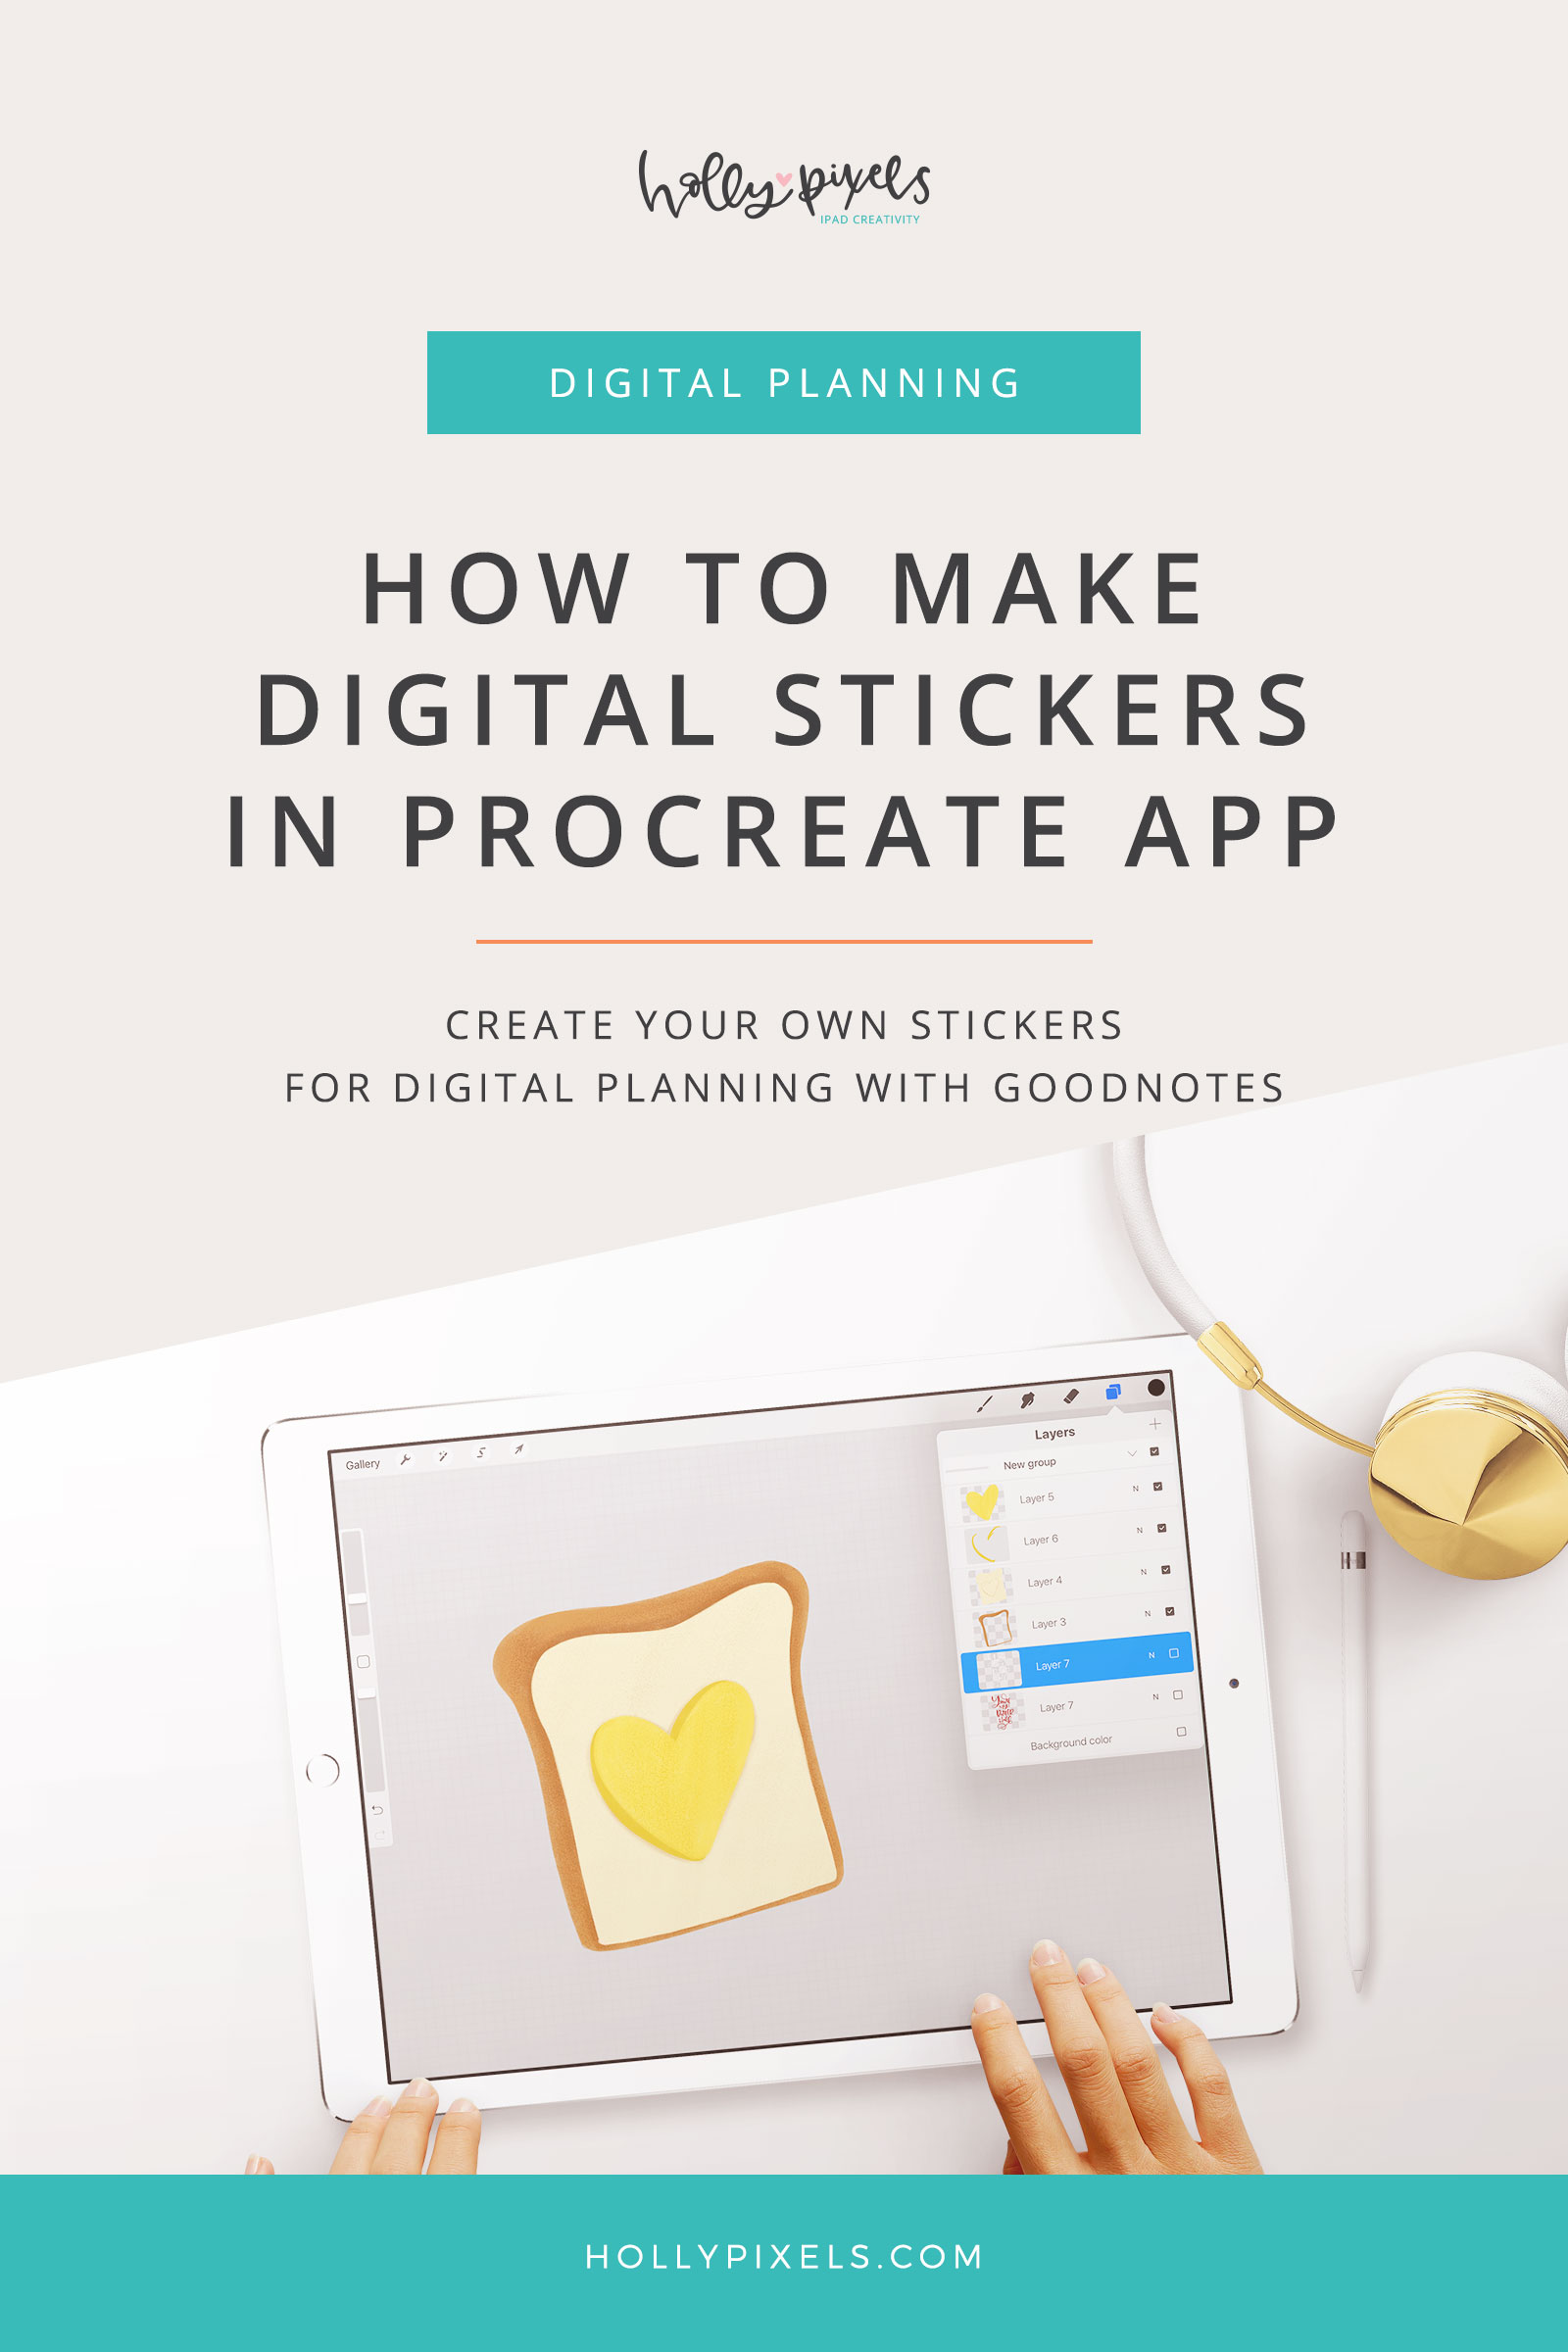 In this video I'm super excited to crossover my Procreate users with GoodNotes for digital planning. I'll show you how to use Procreate to create stickers for GoodNotes digital planners so you can customize your planning in a fun way!